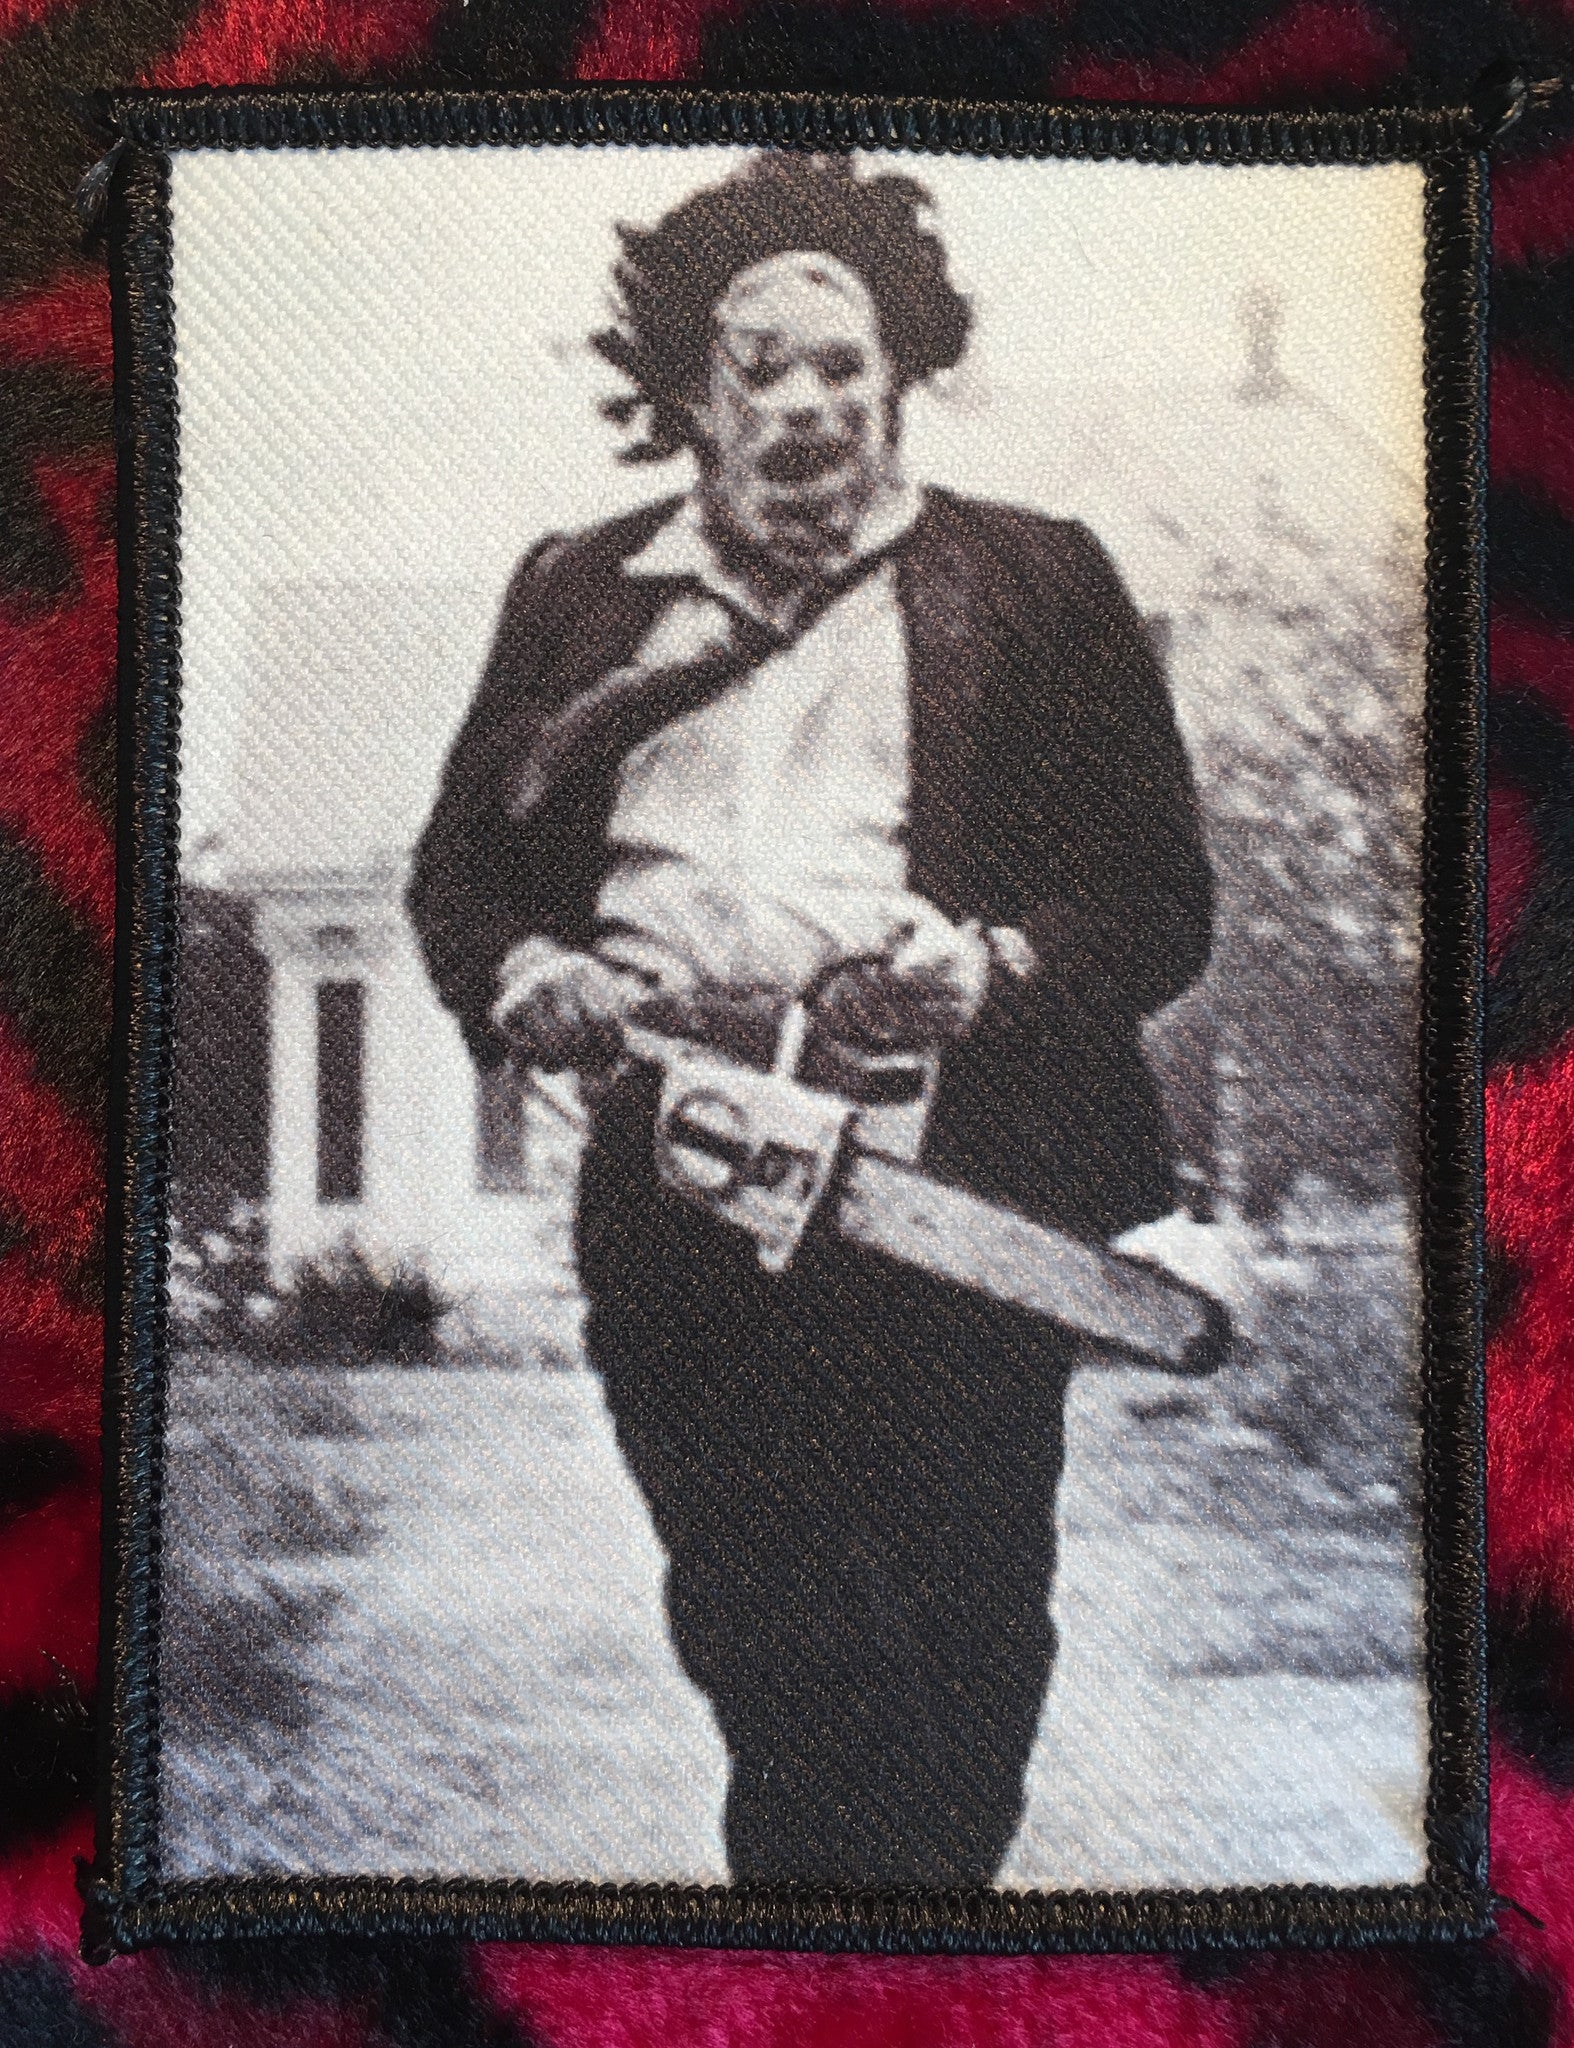 Texas Chainsaw Massacre Leatherface Patch Scream For Me Inc